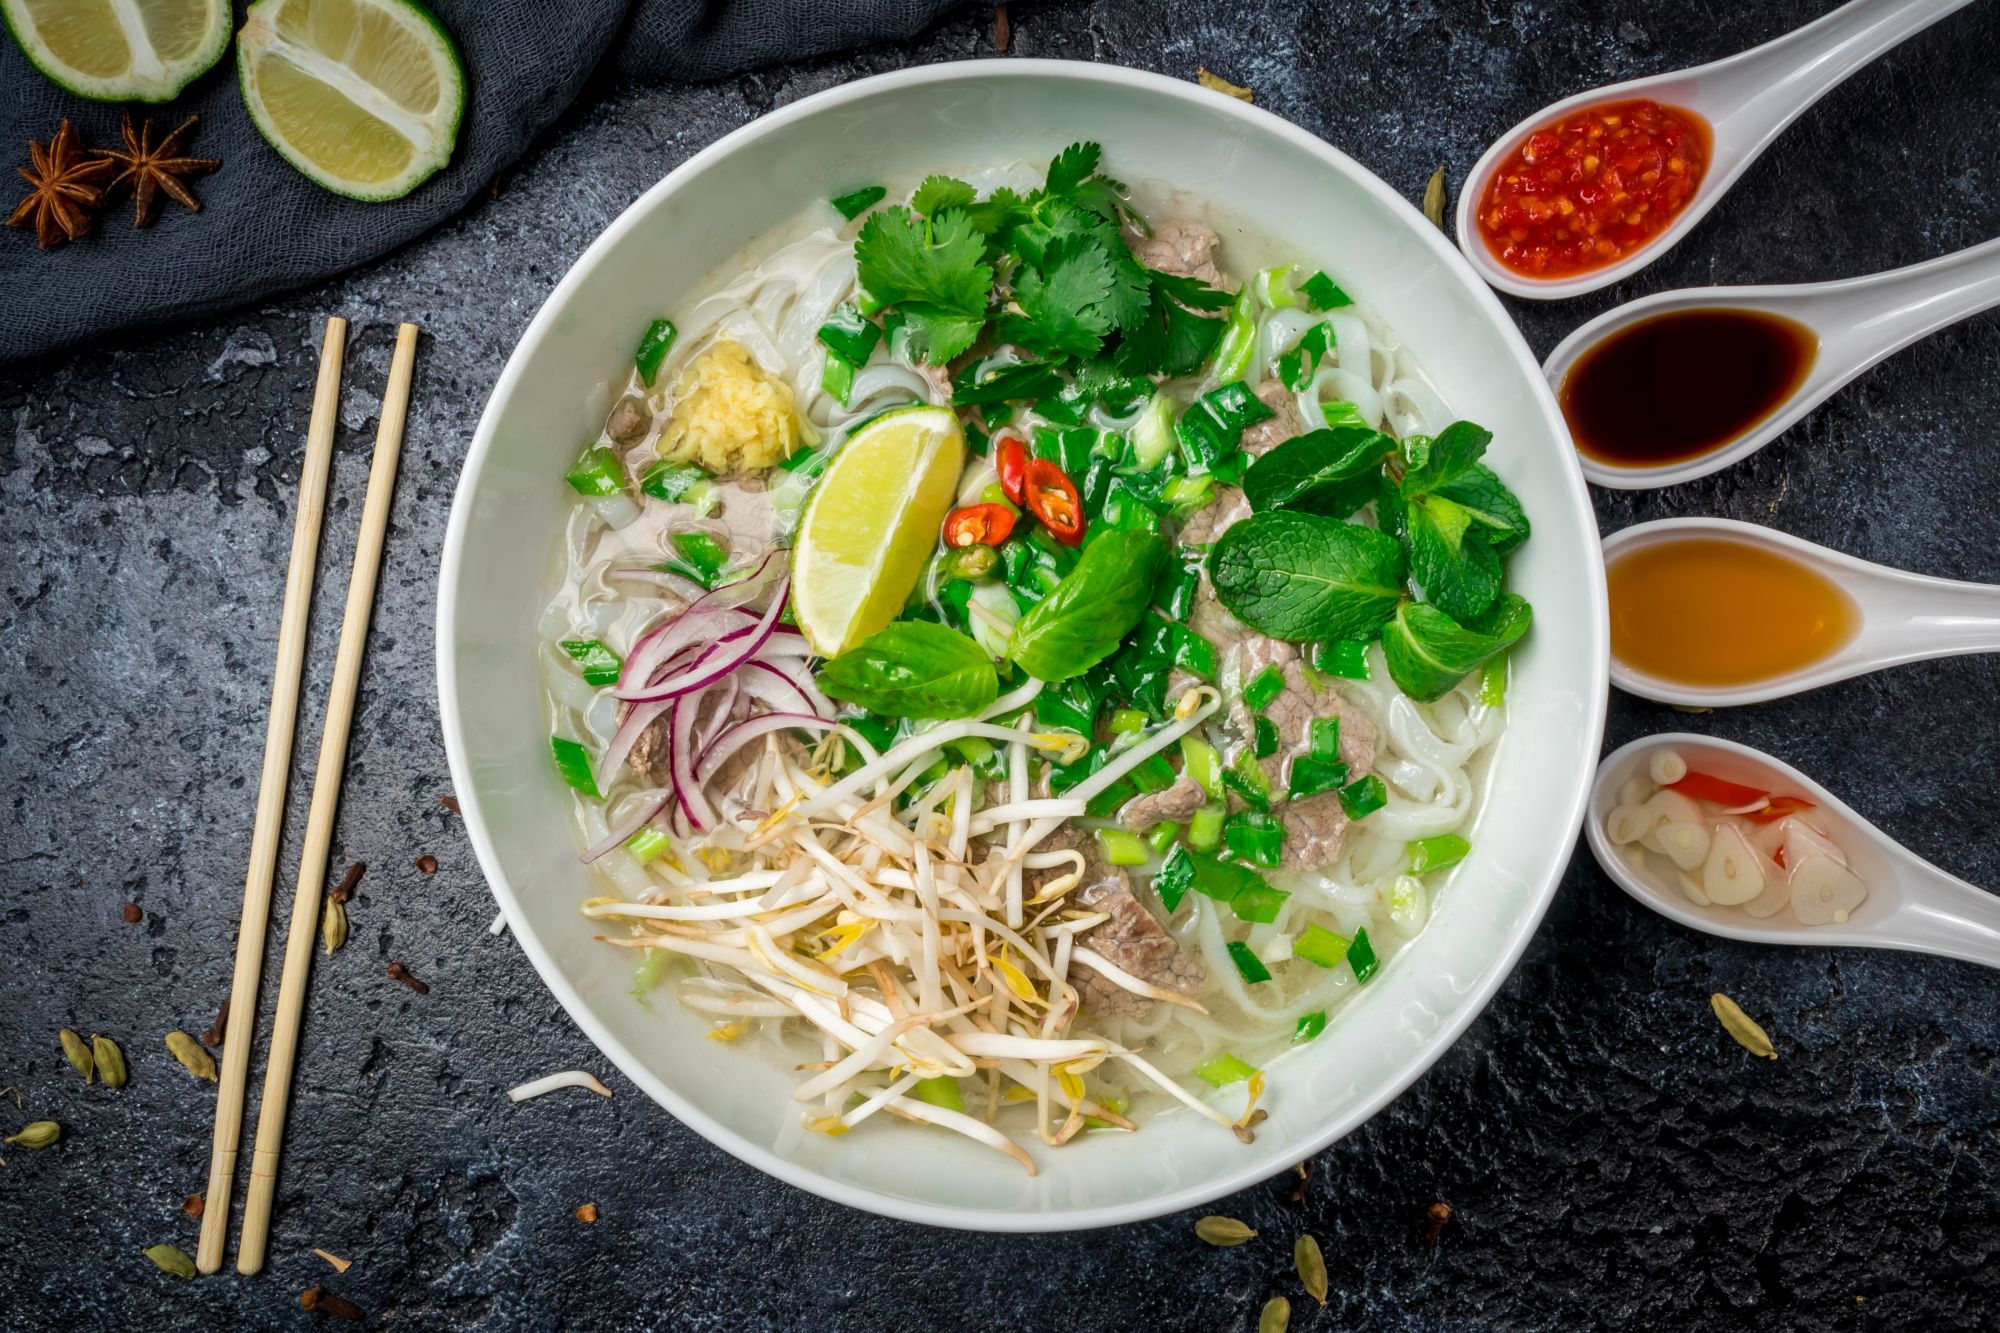 Pho, a noodle soup dish usually made with beef-bone broth, is the national dish of Vietnam